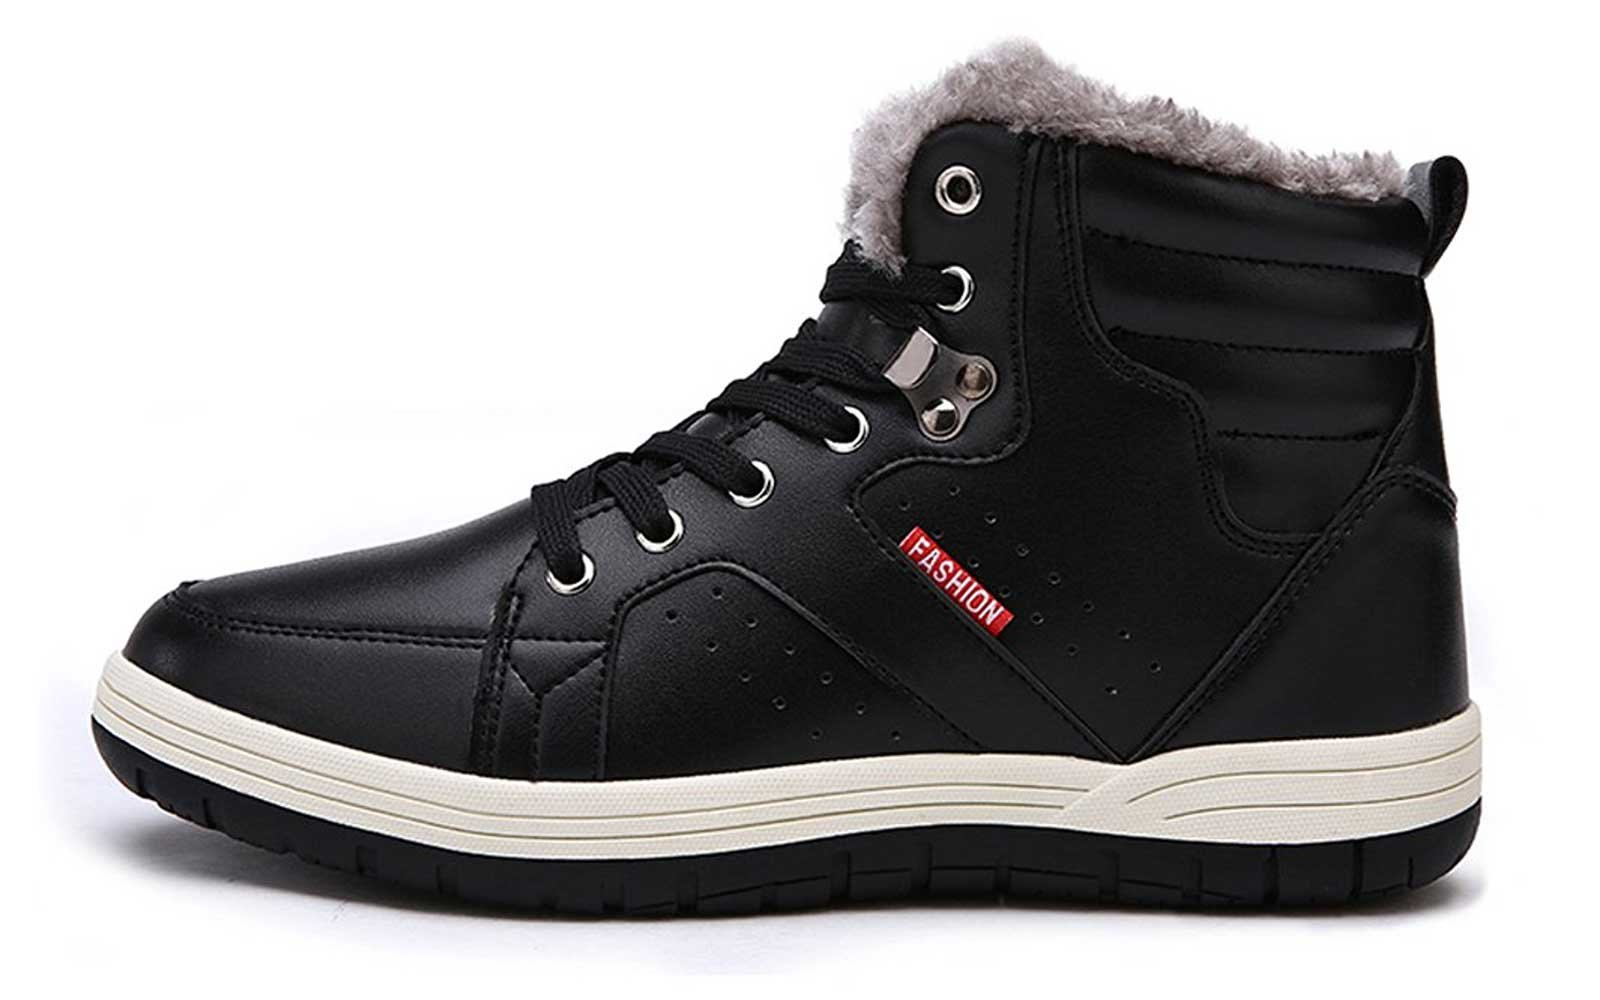 Sneaker style snow boots